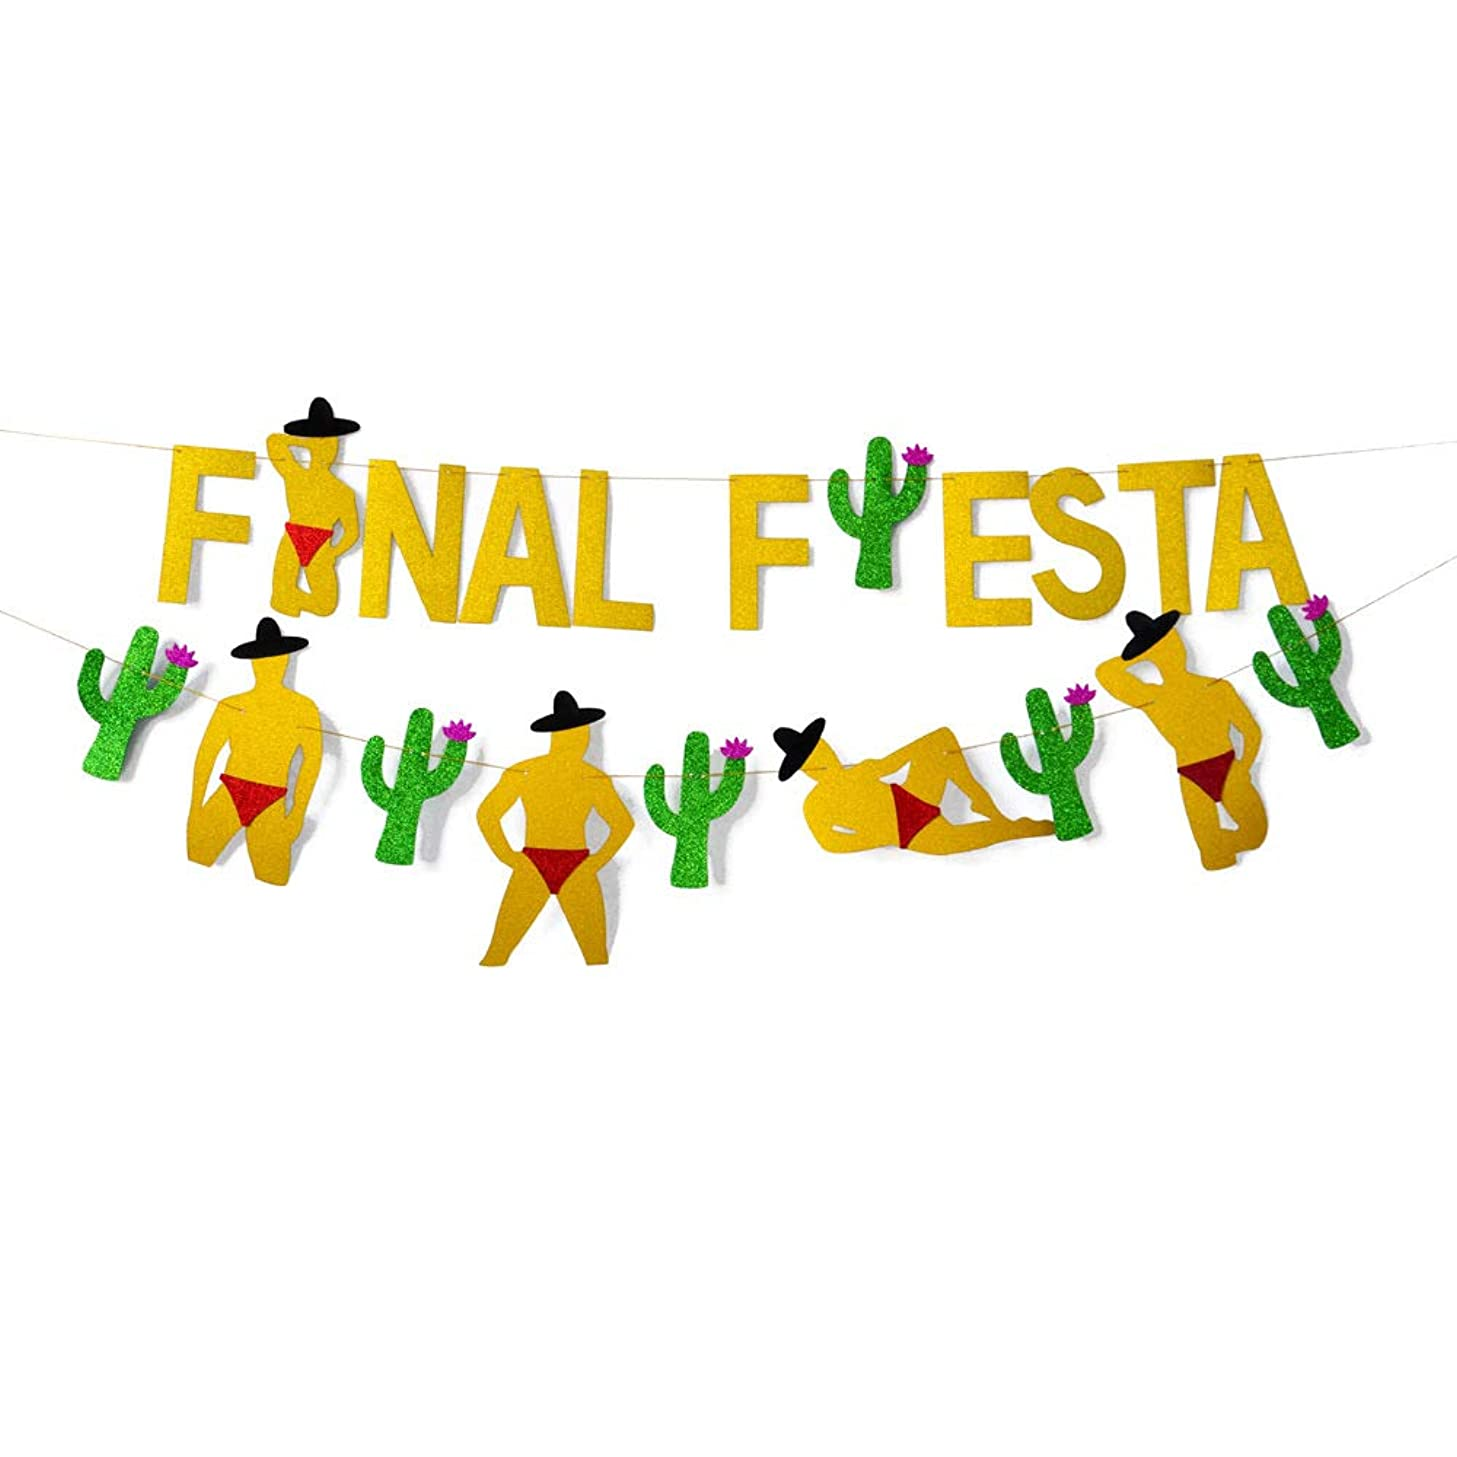 2PCS Gold Glittery Final Fiesta Banner and Glittery Cactus Man Garland,Mexican FiestaTheme Party Decor Bachelorette Wedding Party Decorations